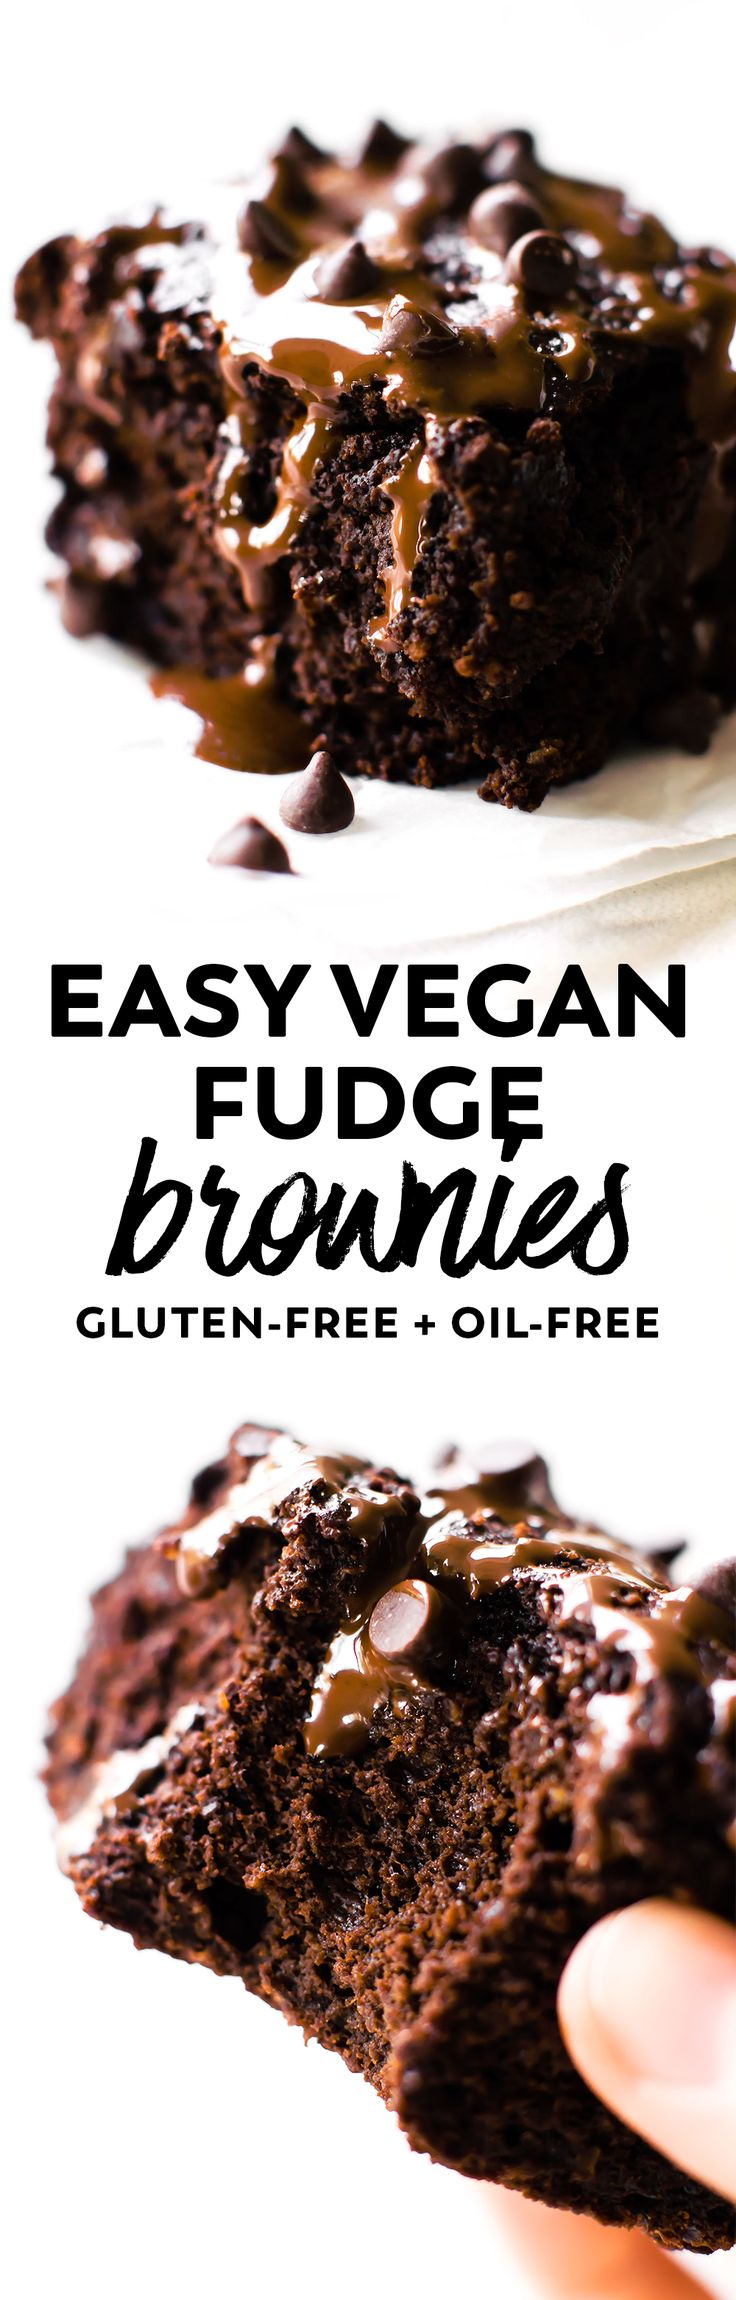 Ultra rich Vegan Fudge Brownies chock full of chocolate! Easily made in the blender. And healthier than most with applesauce, oat flour, and no added sugar. #vegan #glutenfree #chocolate via @Natalie | Feasting on Fruit